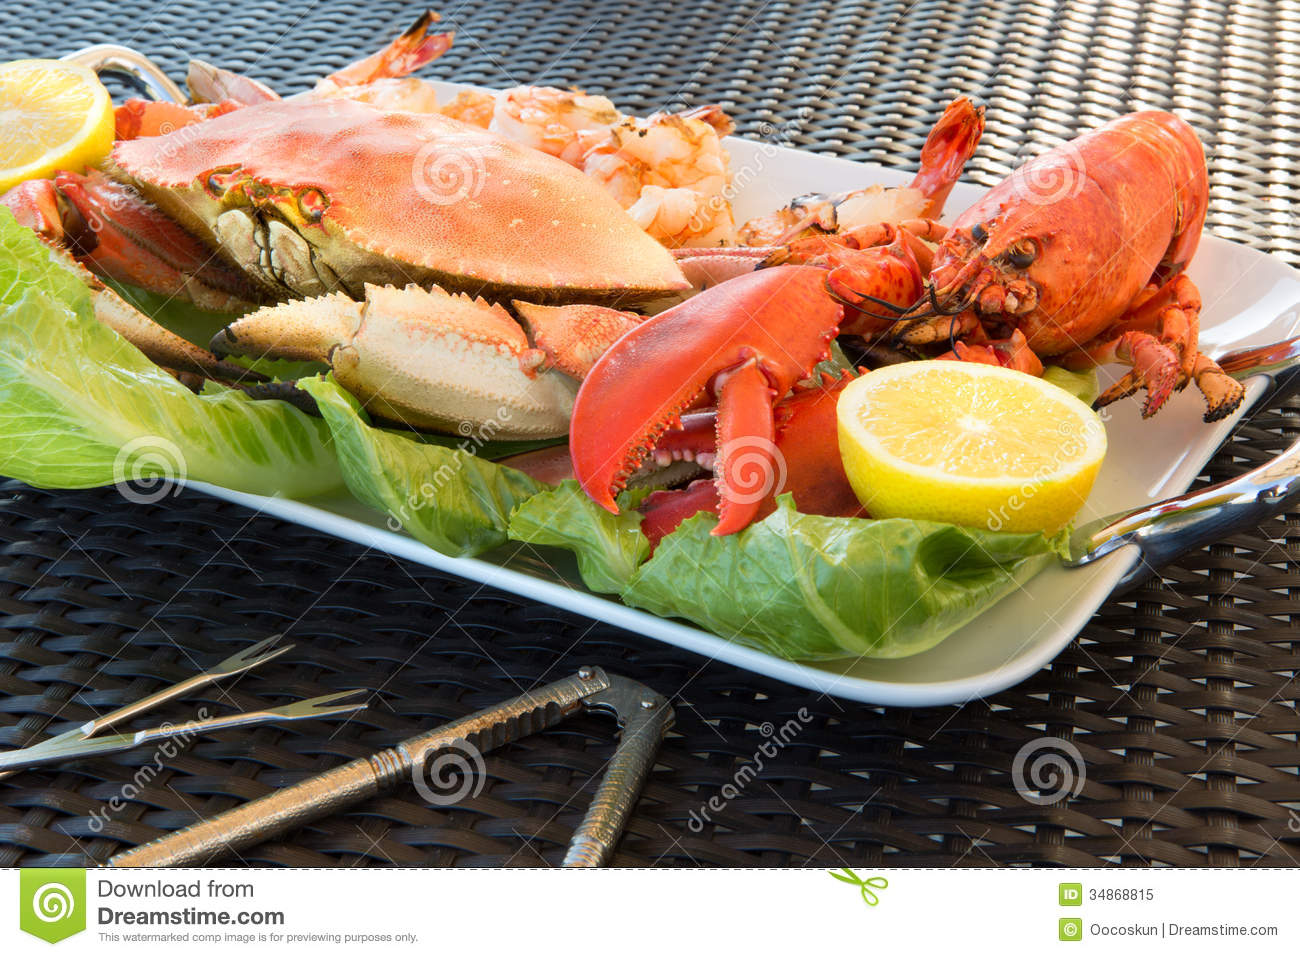 Red Lobster, Crab And Jumbo Shrimps On A Big Plate Stock Image - Image of culinary, clamps: 34868815